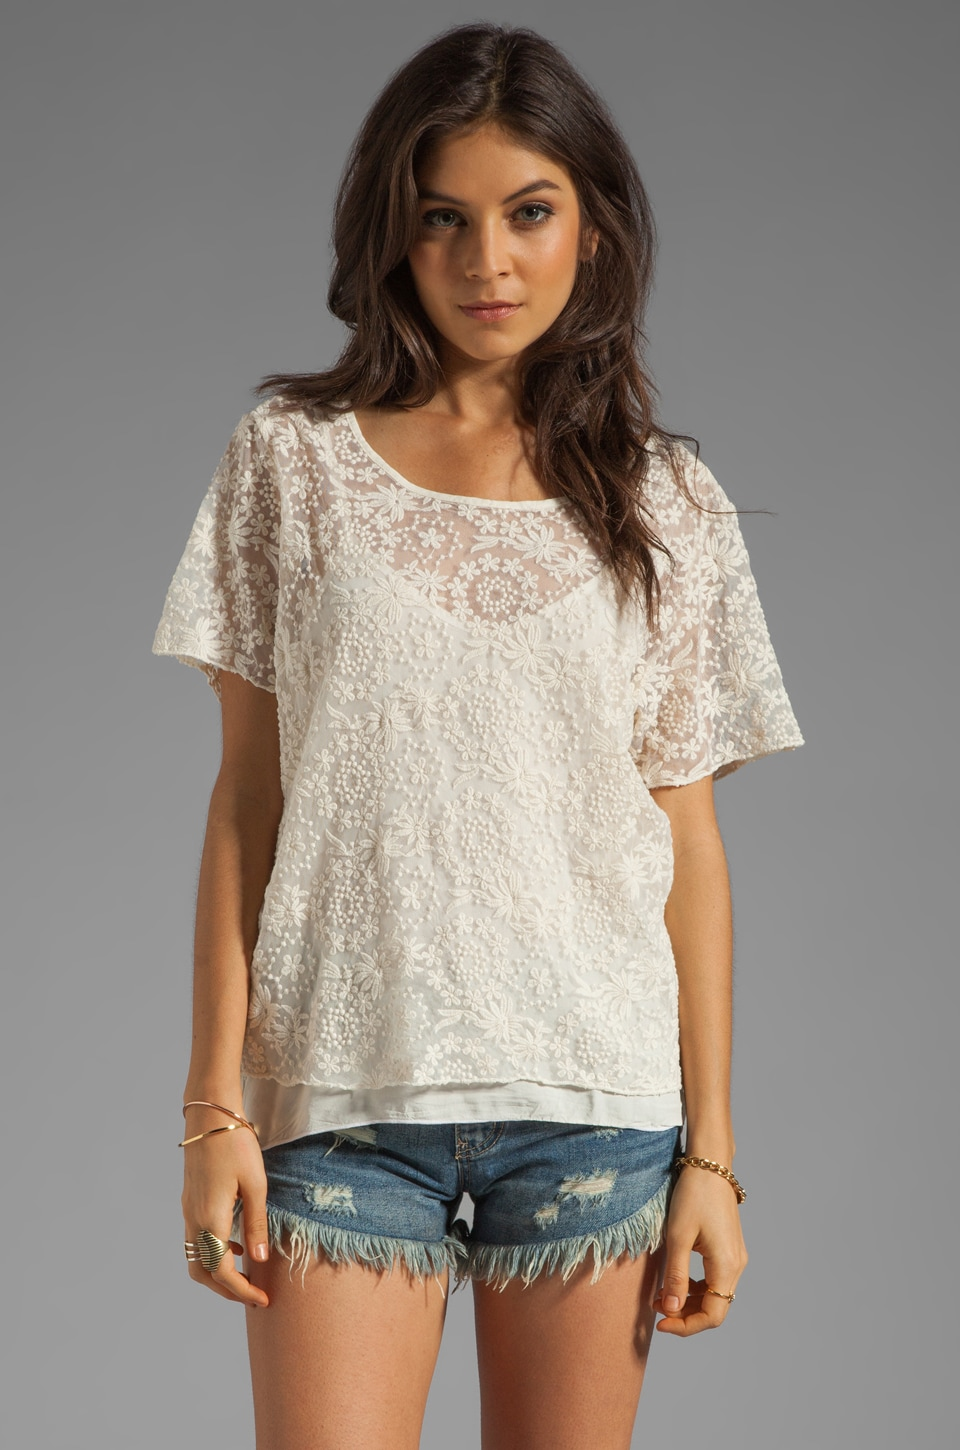 SAM&LAVI Chanel Lace Top in Off White